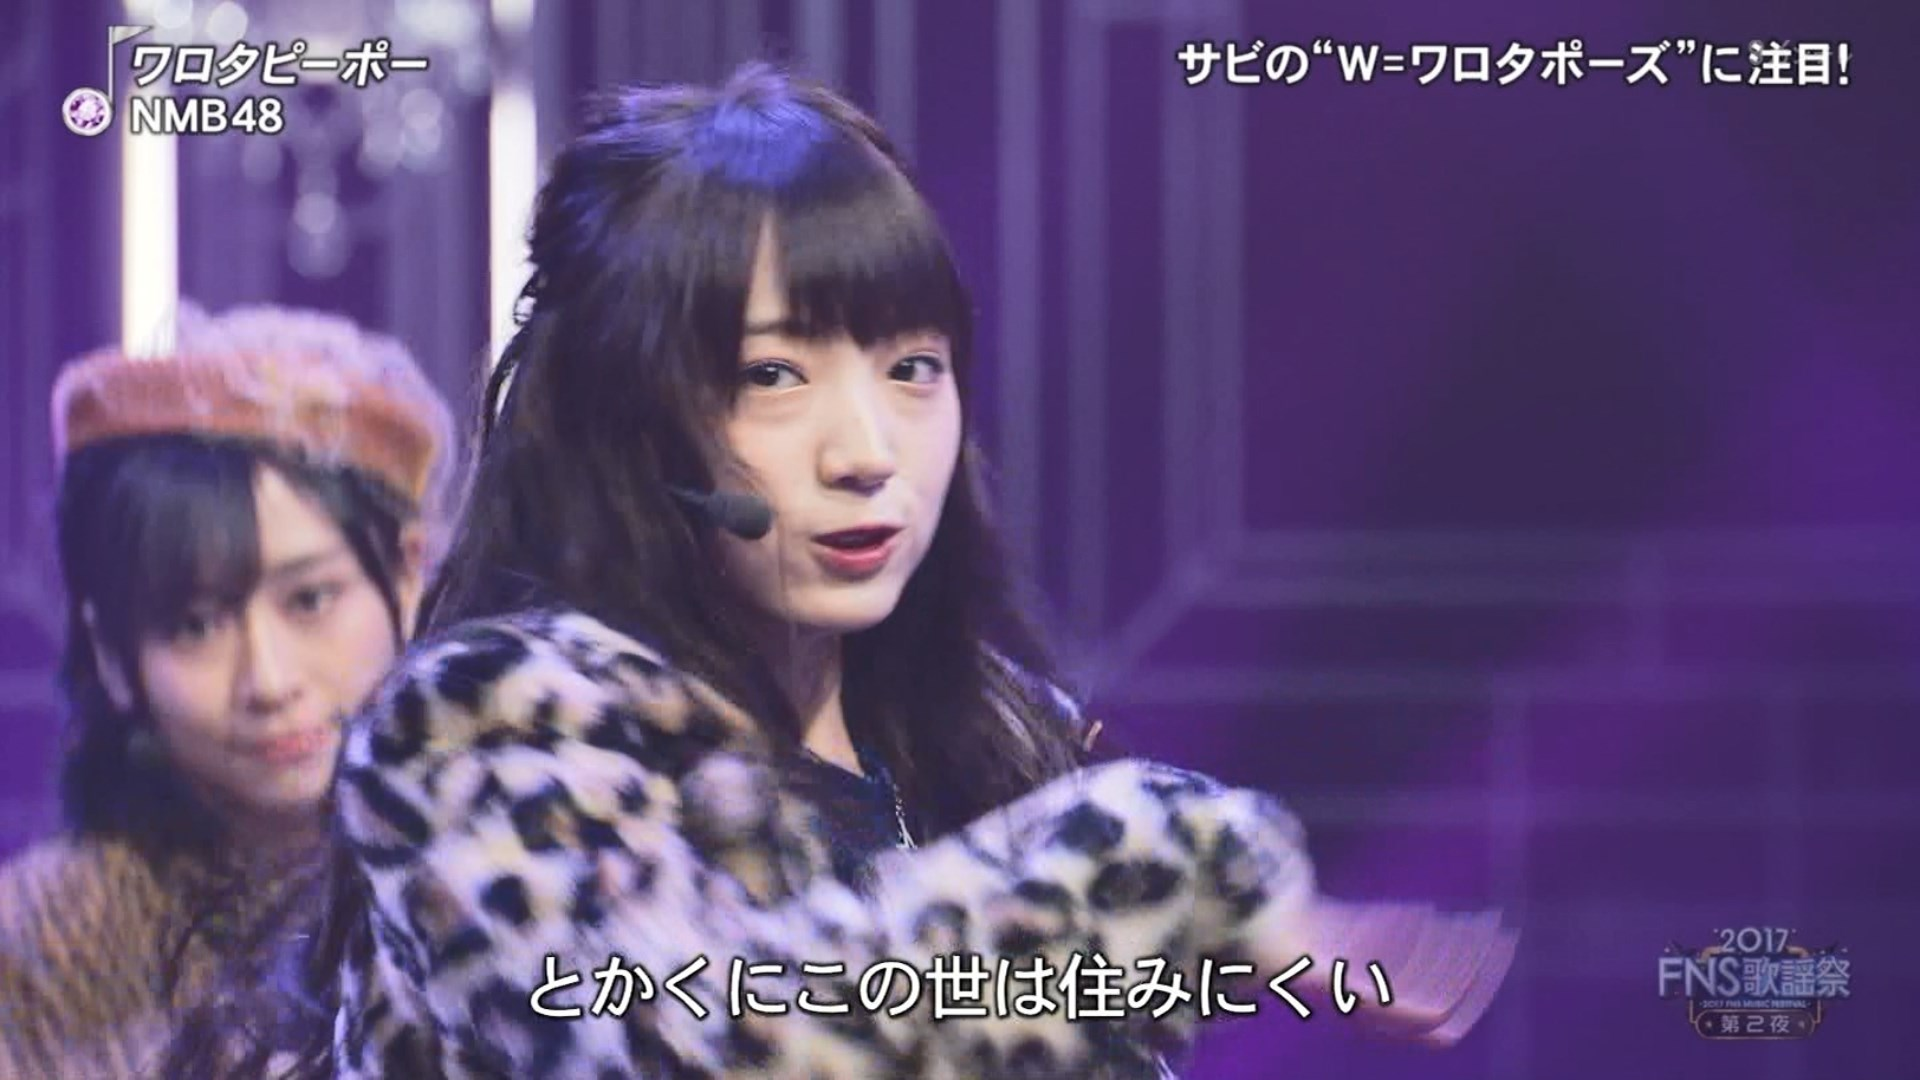 2017FNS歌謡祭第2夜・NMB48ワロタピーポーキャプ-017